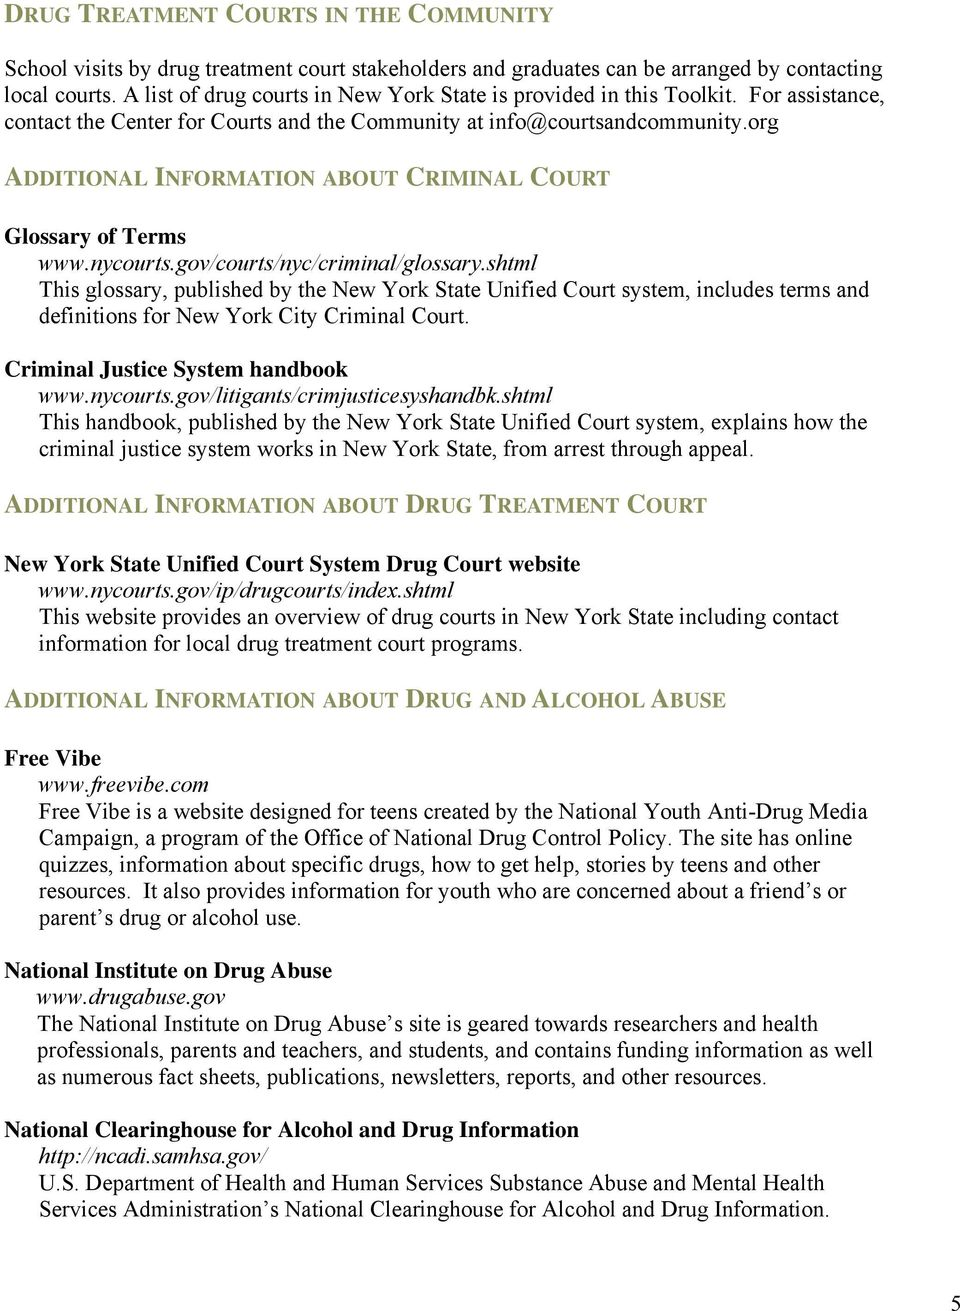 org ADDITIONAL INFORMATION ABOUT CRIMINAL COURT Glossary of Terms www.nycourts.gov/courts/nyc/criminal/glossary.